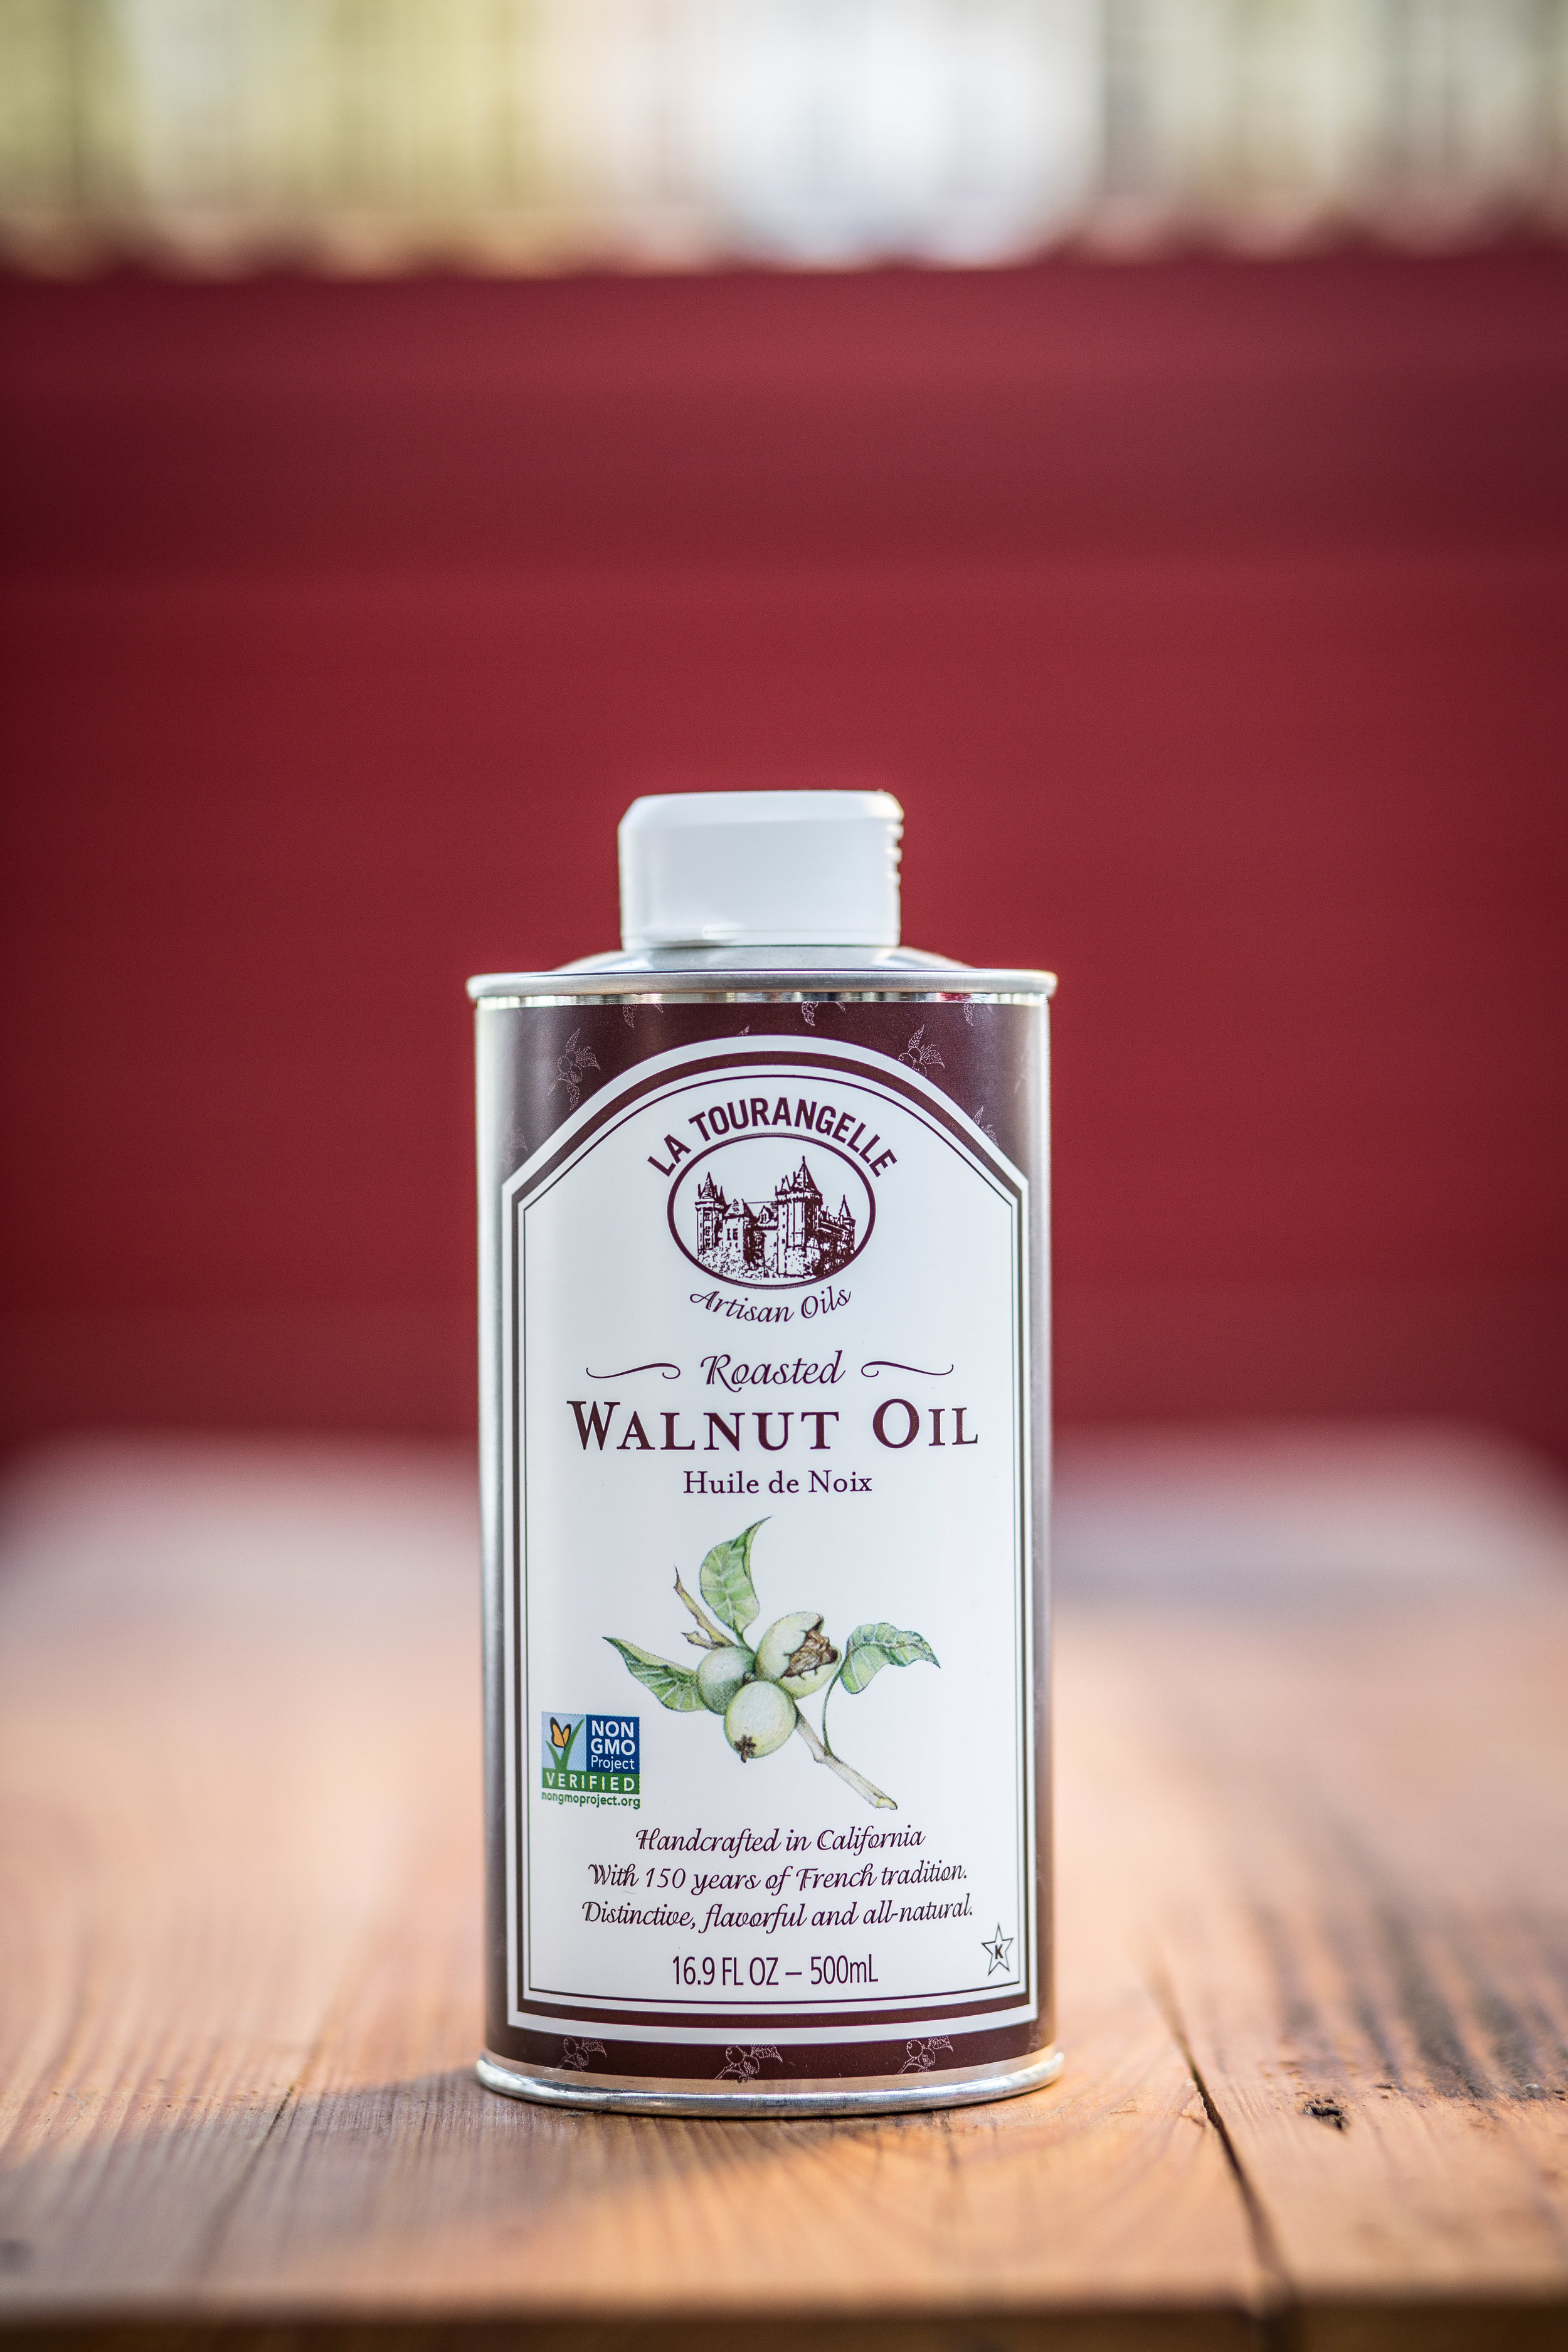 Try drizzling Walnut Oil over a pasta dish or salad to enhance the flavor.